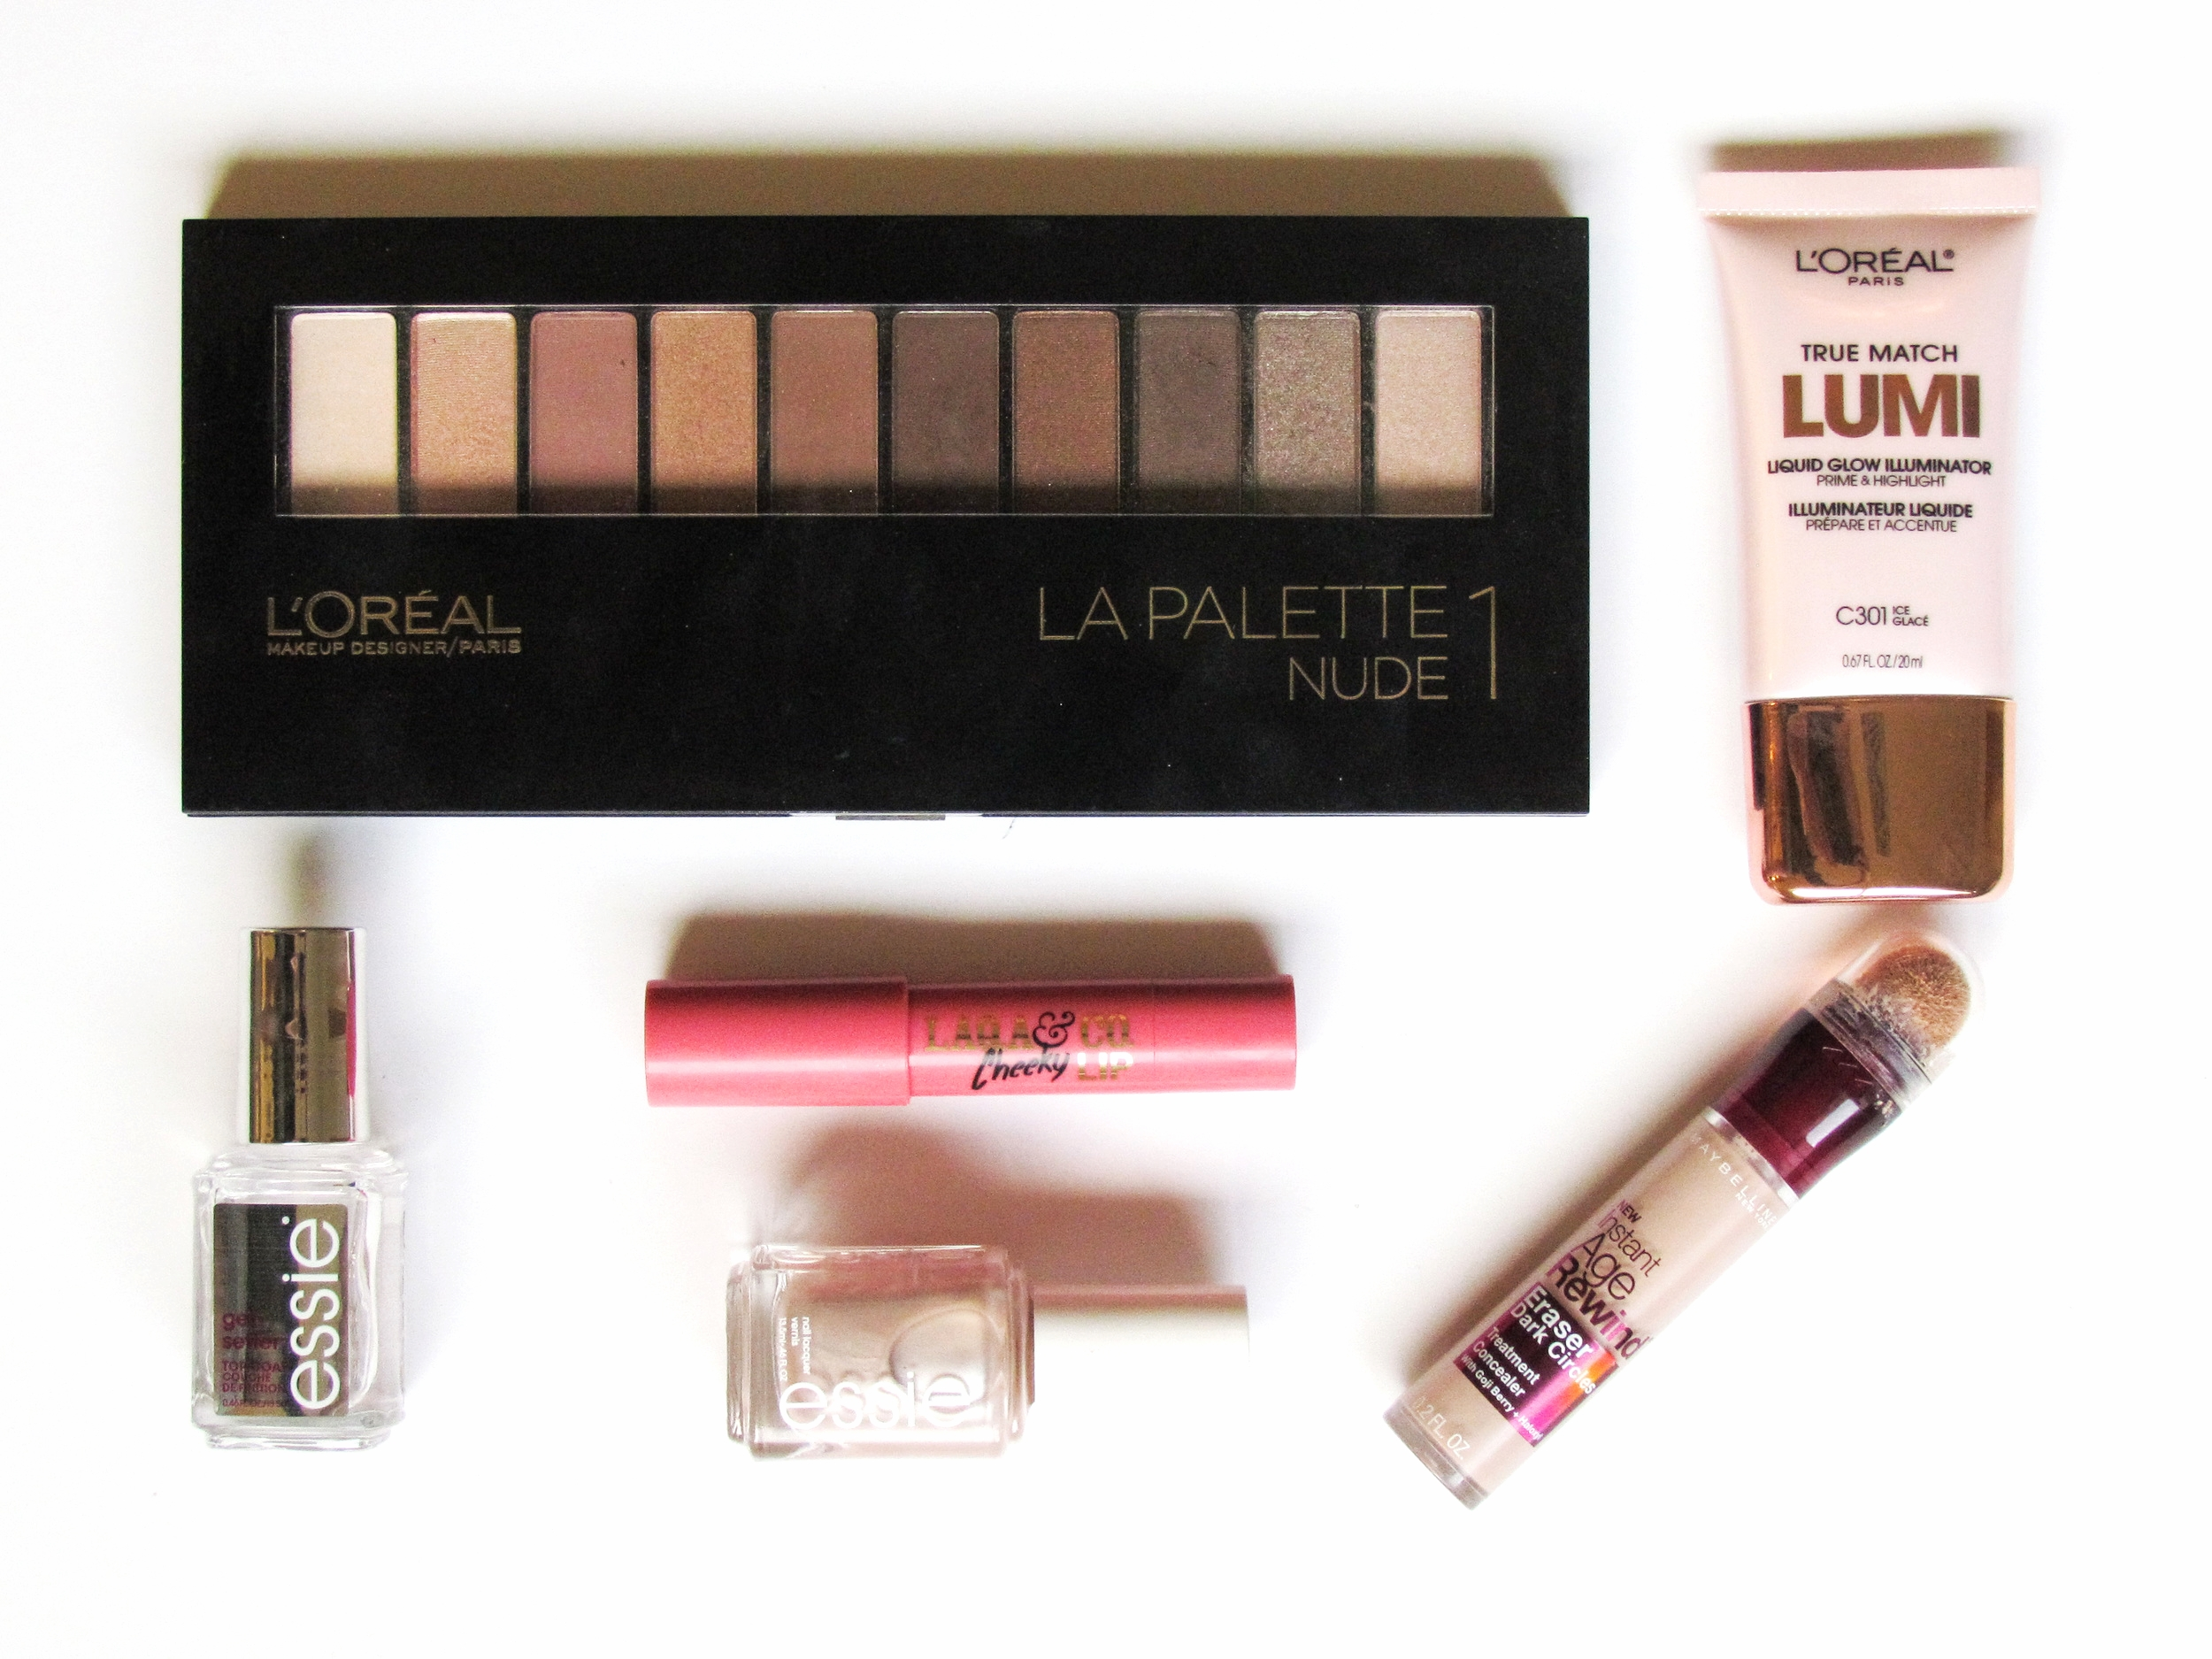 L'Oreal La Palette Nude 1, Essie Gel top coat, Essie pearl polish in Imported Bubbly, LAQA cheek and lip balm, Maybelline New York under eye brightening concealer, and L'Oreal Lumi highlighter in Ice - Southern New Yorker - August Favorites